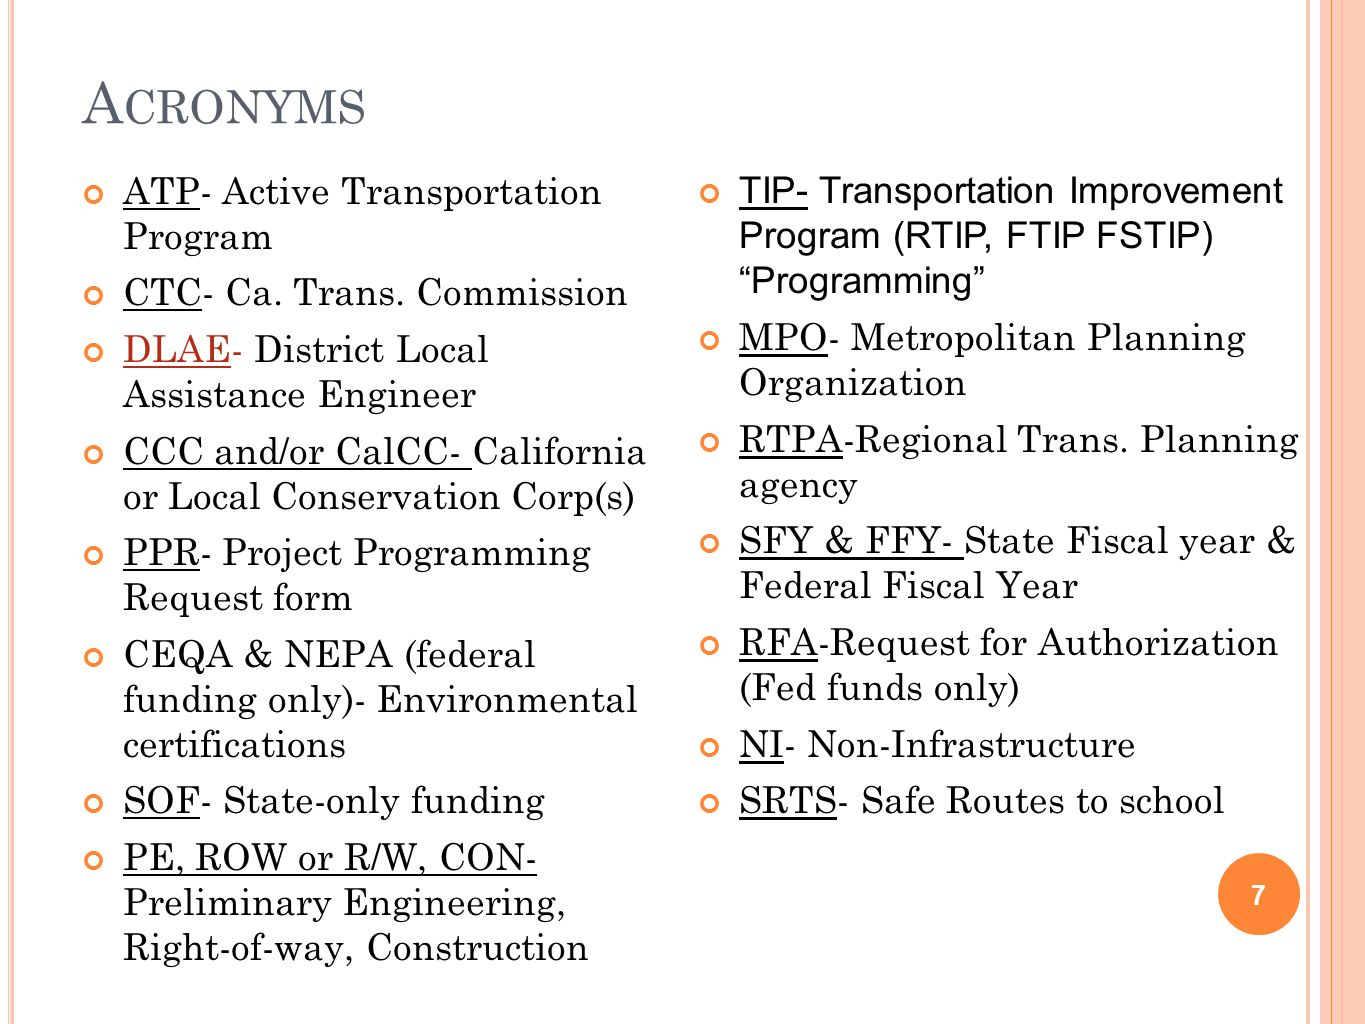 P ROJECT S CHEDULE - S TEP 3B R EQUEST FOR A UTHORIZATION (RFA)- ROW 38 All Federally funded projects require a Right-of- way (ROW) certification, except for Non- Infrastructure (NI) projects.